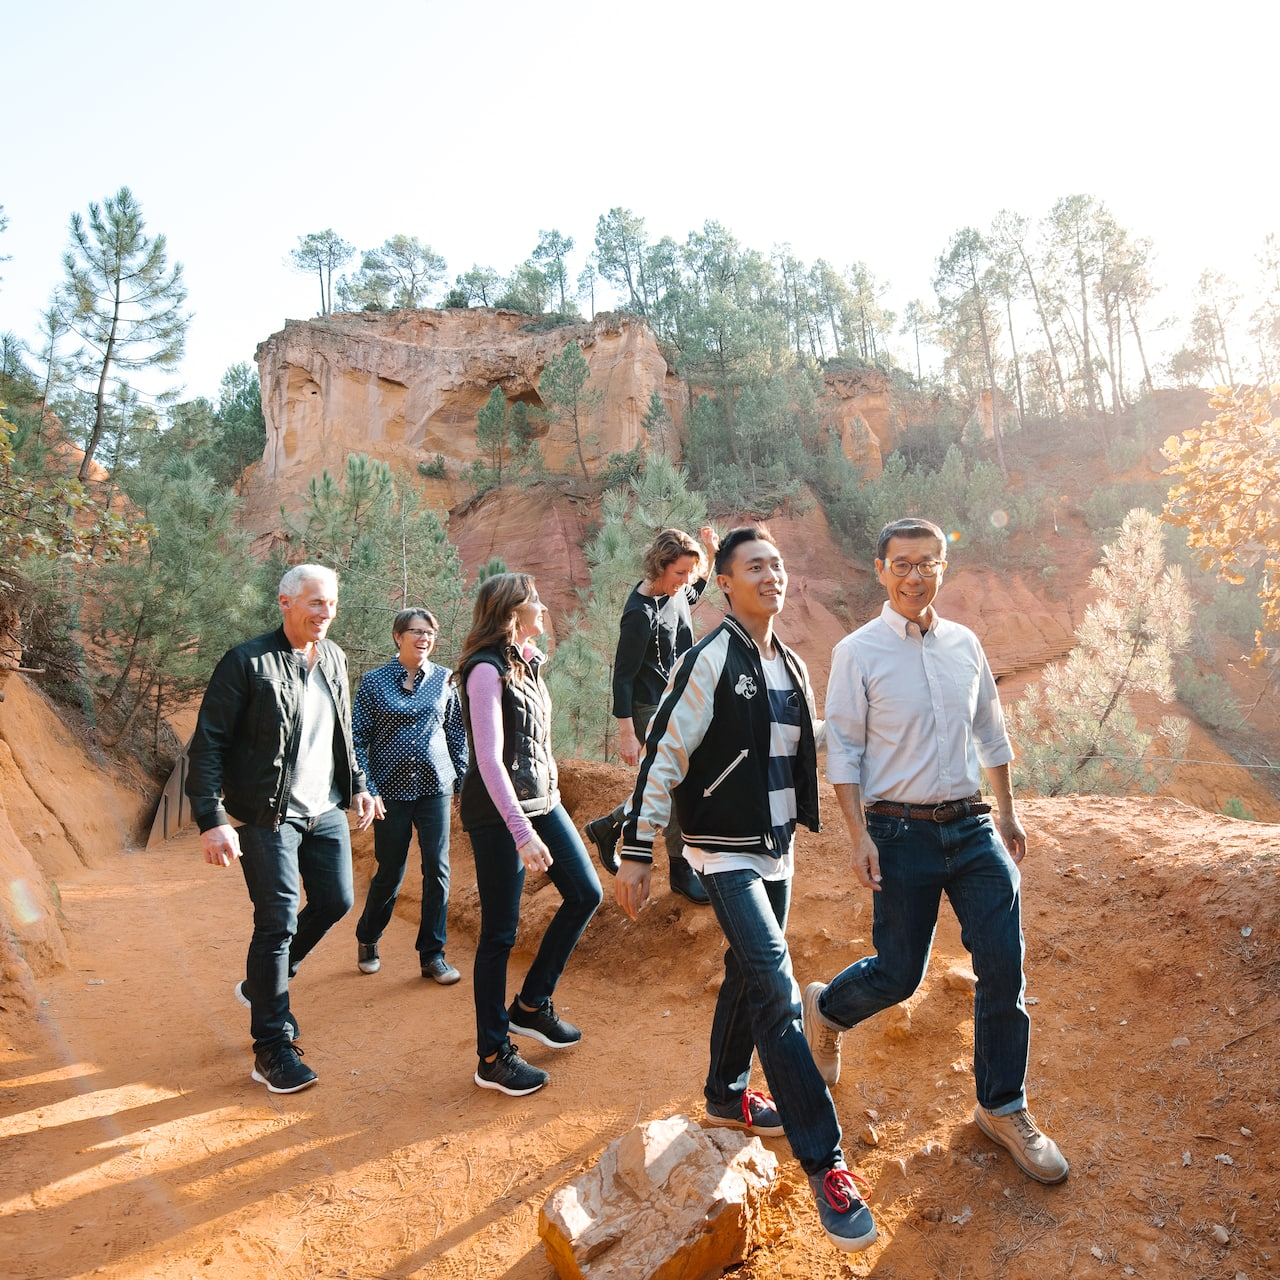 A group of 5 people walk along the Ochre Trail in Luberon, France